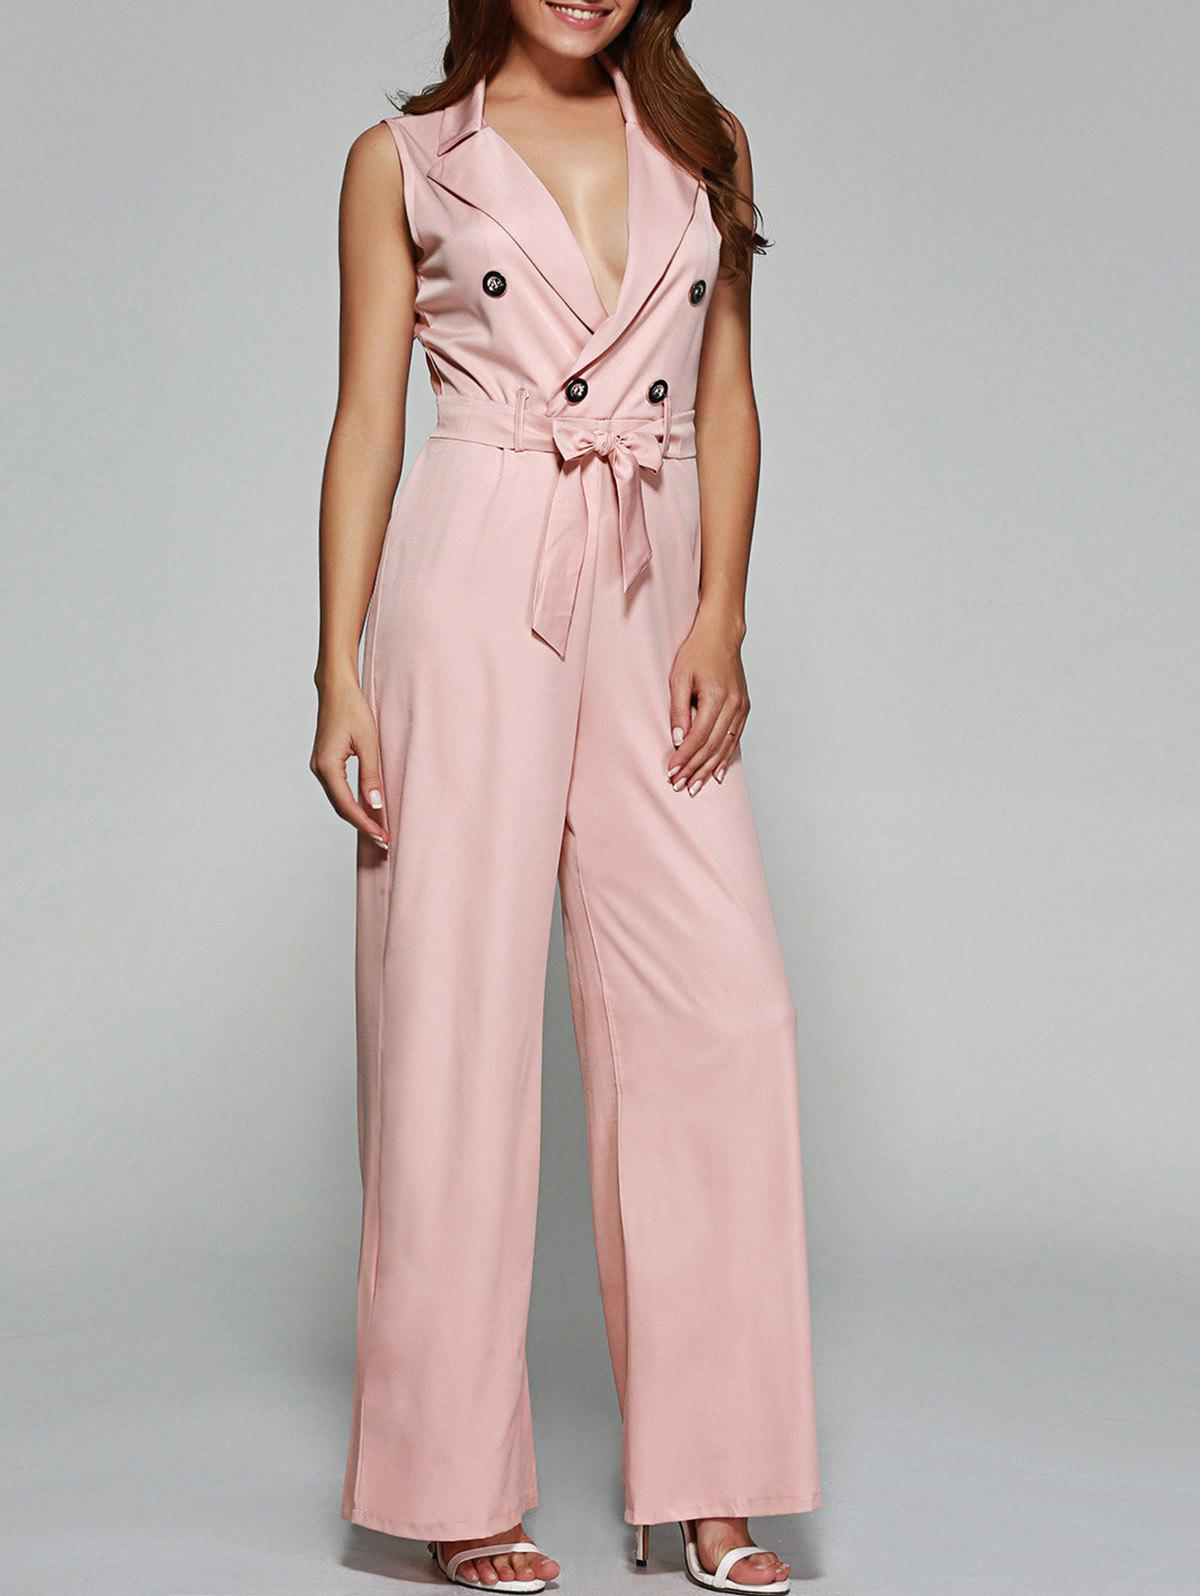 Buttoned Tied Belt Wide-Leg Jumpsuit - LIGHT PINK L